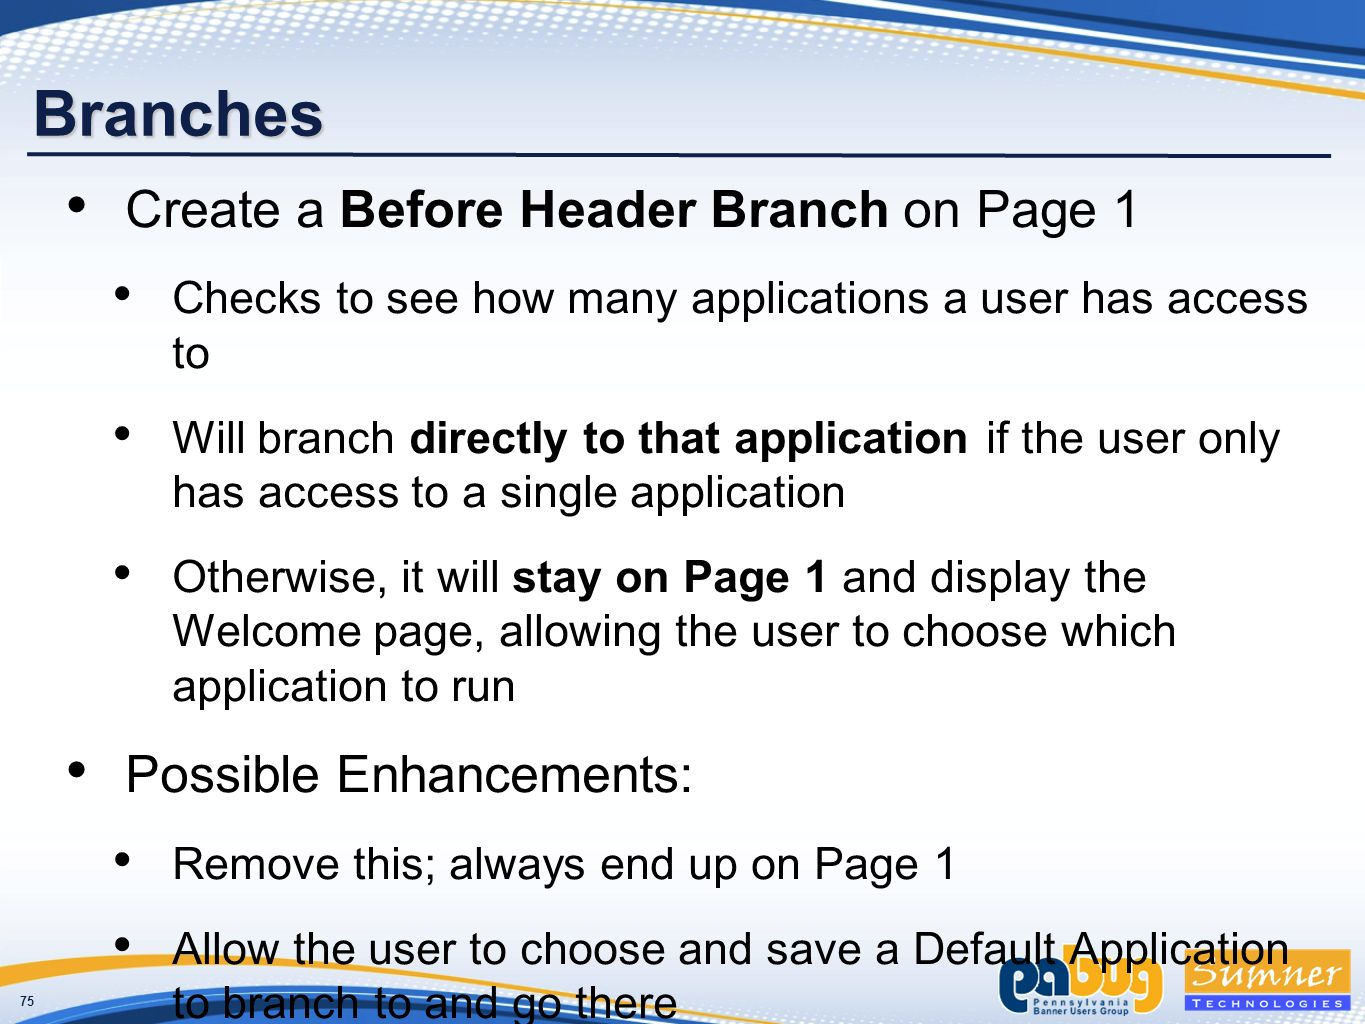 75 Branches Create a Before Header Branch on Page 1 Checks to see how many applications a user has access to Will branch directly to that application if the user only has access to a single application Otherwise, it will stay on Page 1 and display the Welcome page, allowing the user to choose which application to run Possible Enhancements: Remove this; always end up on Page 1 Allow the user to choose and save a Default Application to branch to and go there